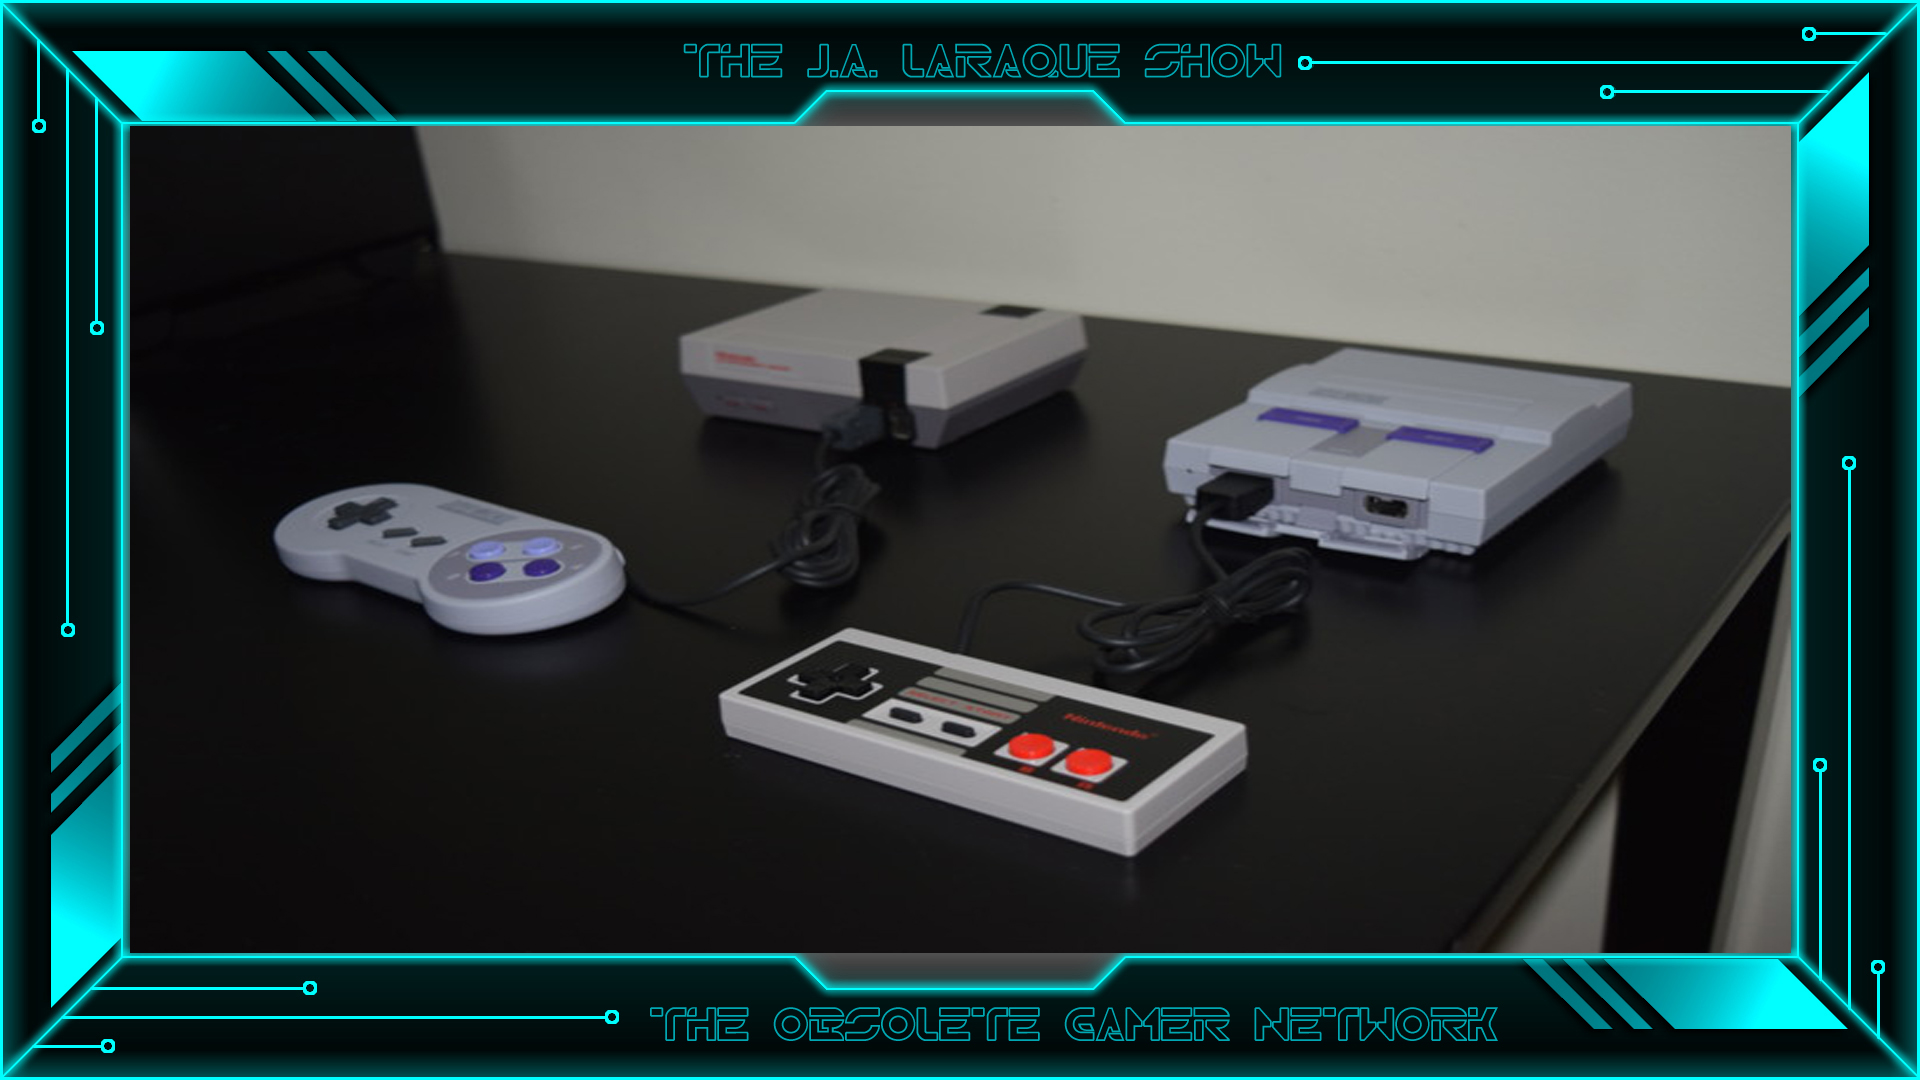 The J.A. Laraque Show - E4 - The NES & SNES with Luis Zena of Retro Gaming Life